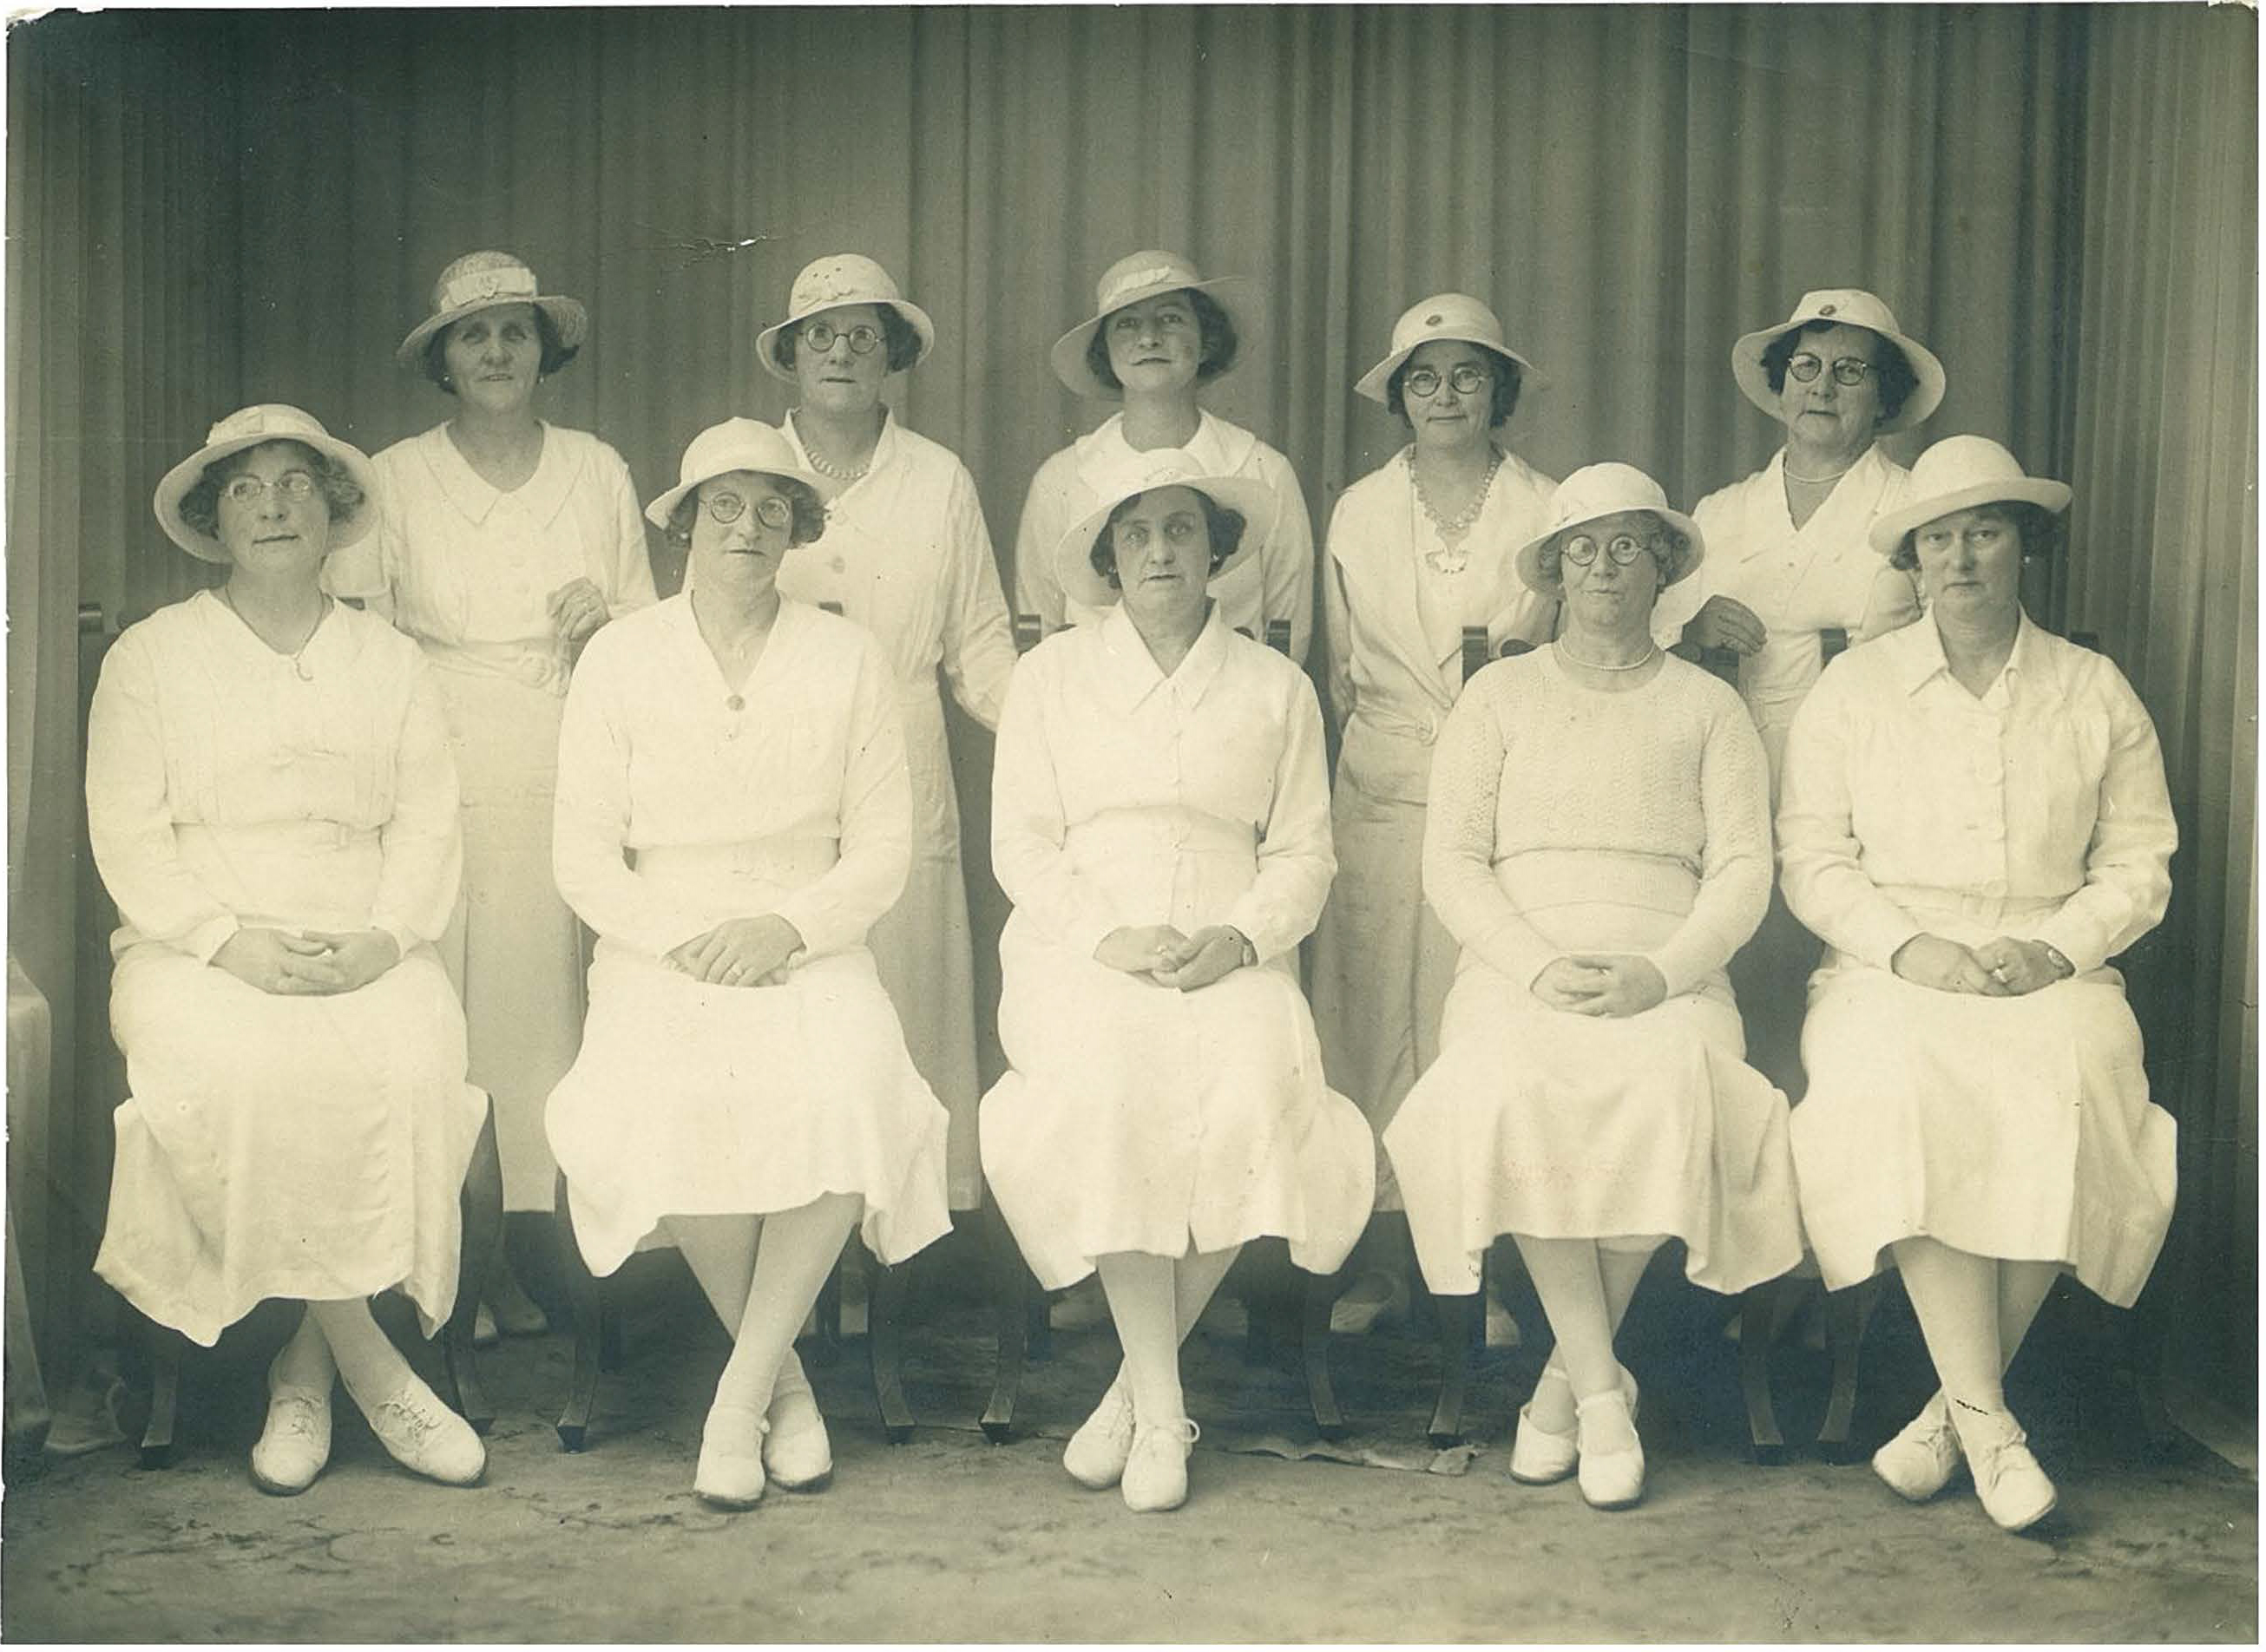 Auburn Bowlers from 1930